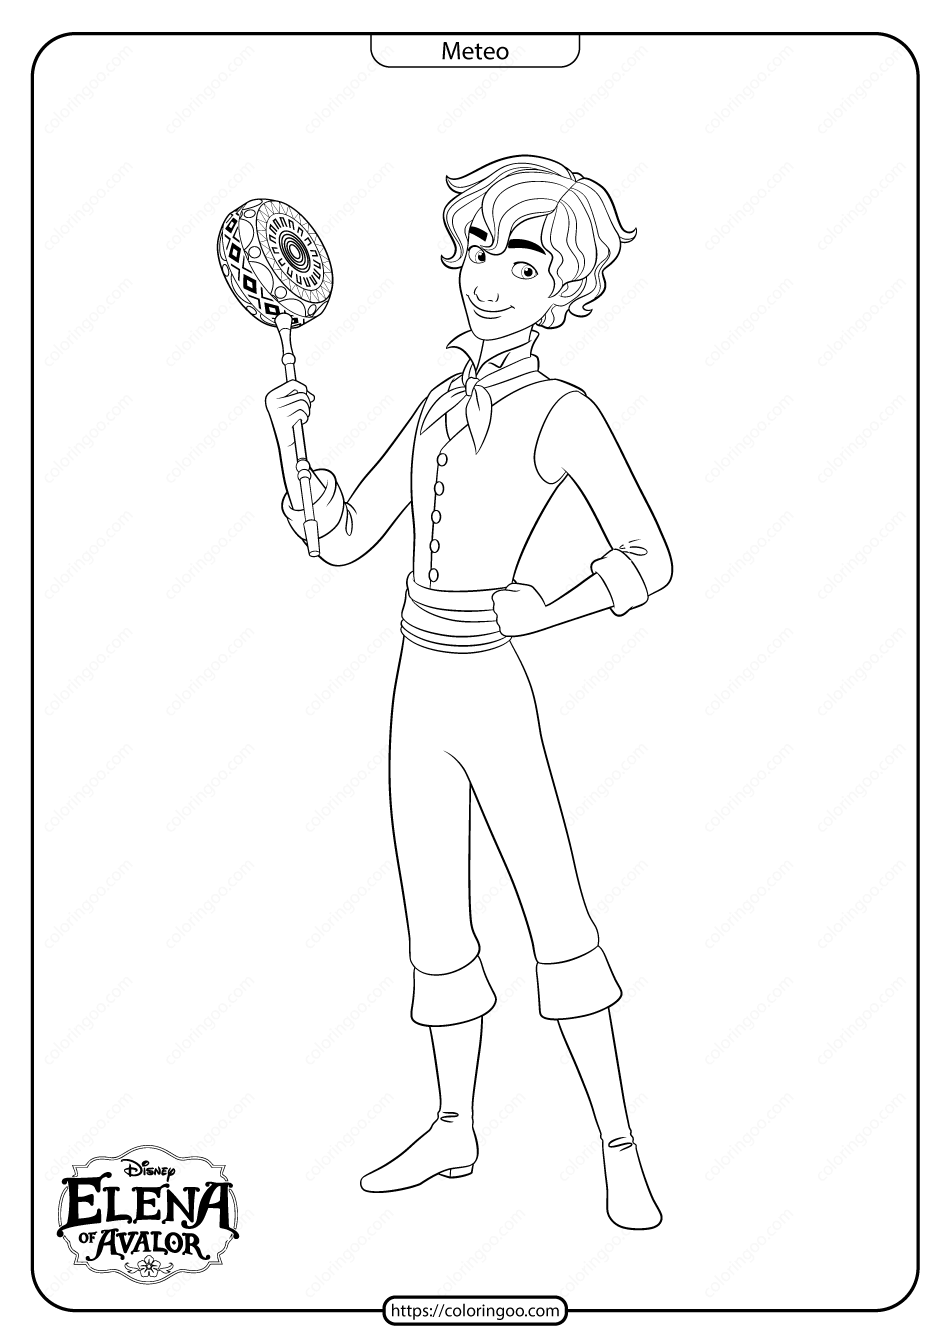 Printable Elena Of Avalor Meteo Coloring Pages